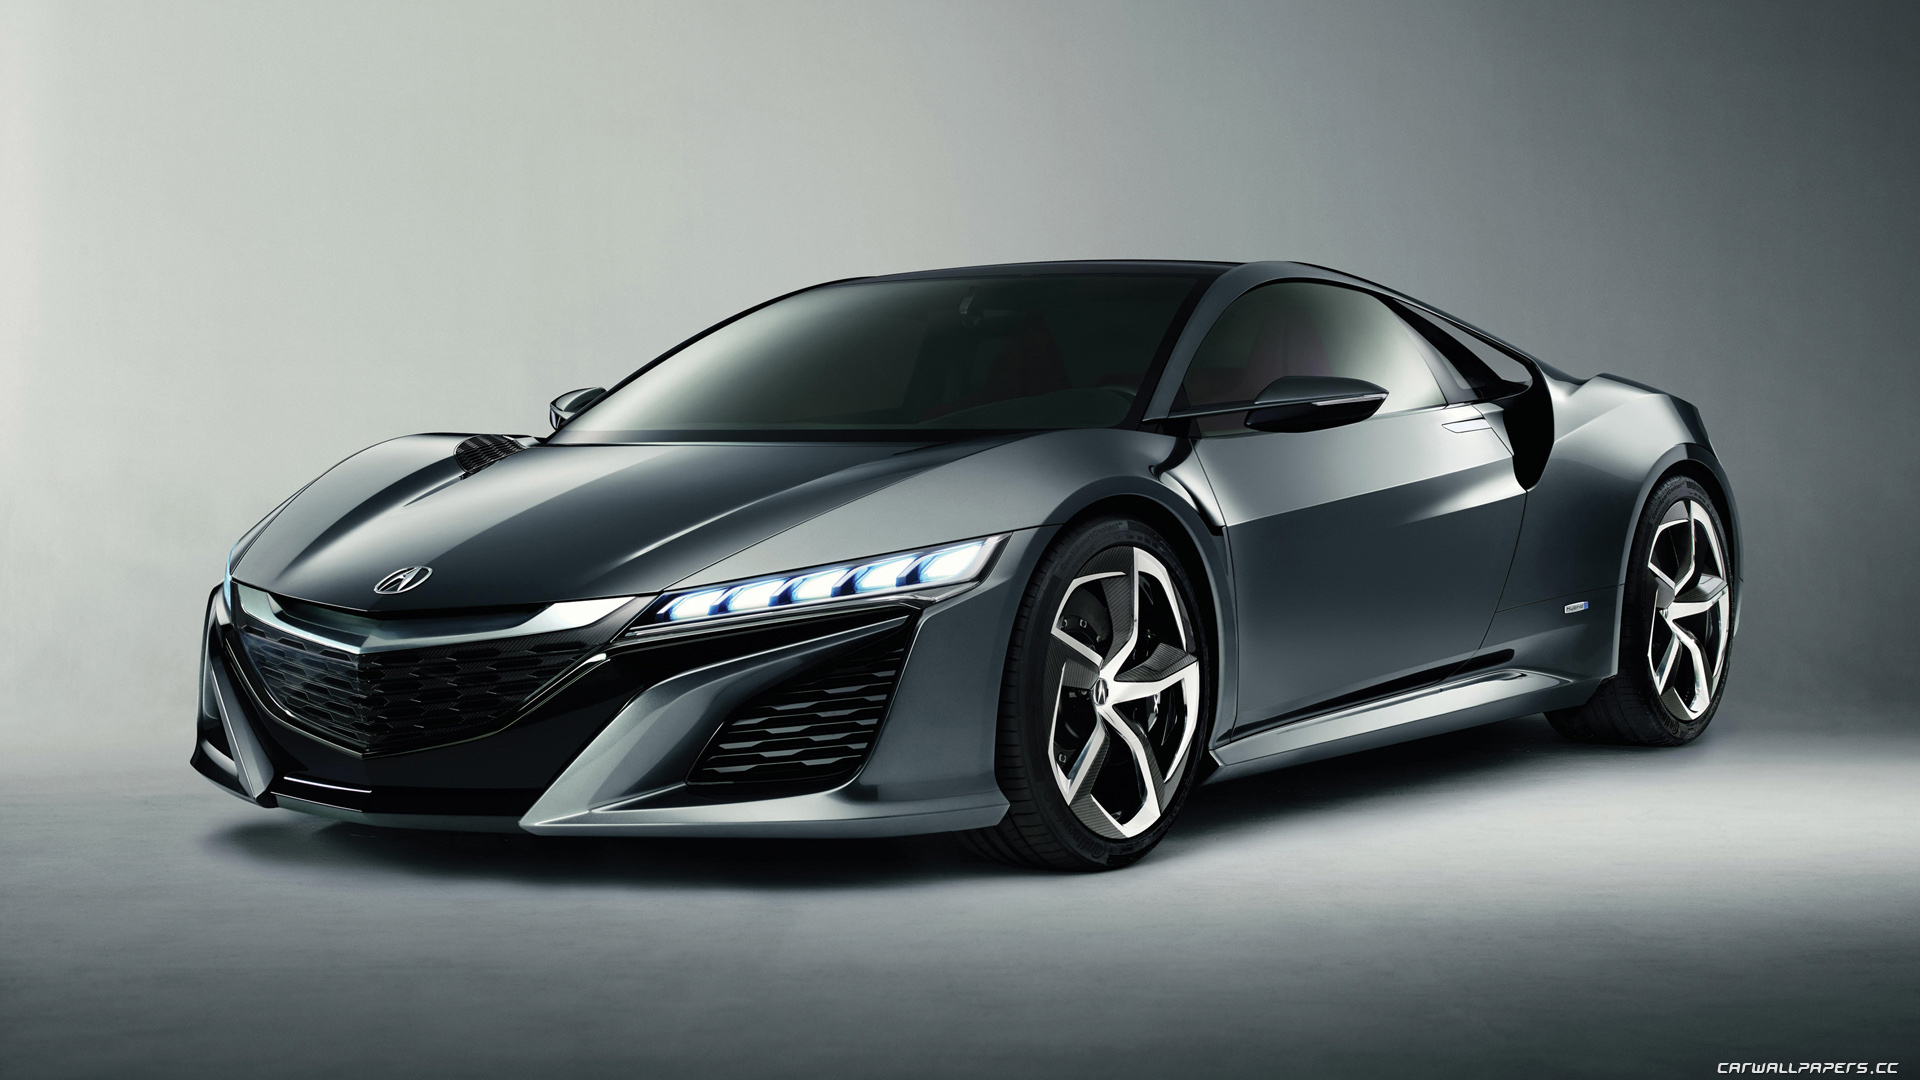 New Honda Civic Two Seater Car HD Wallpapers | HD Wallpapers